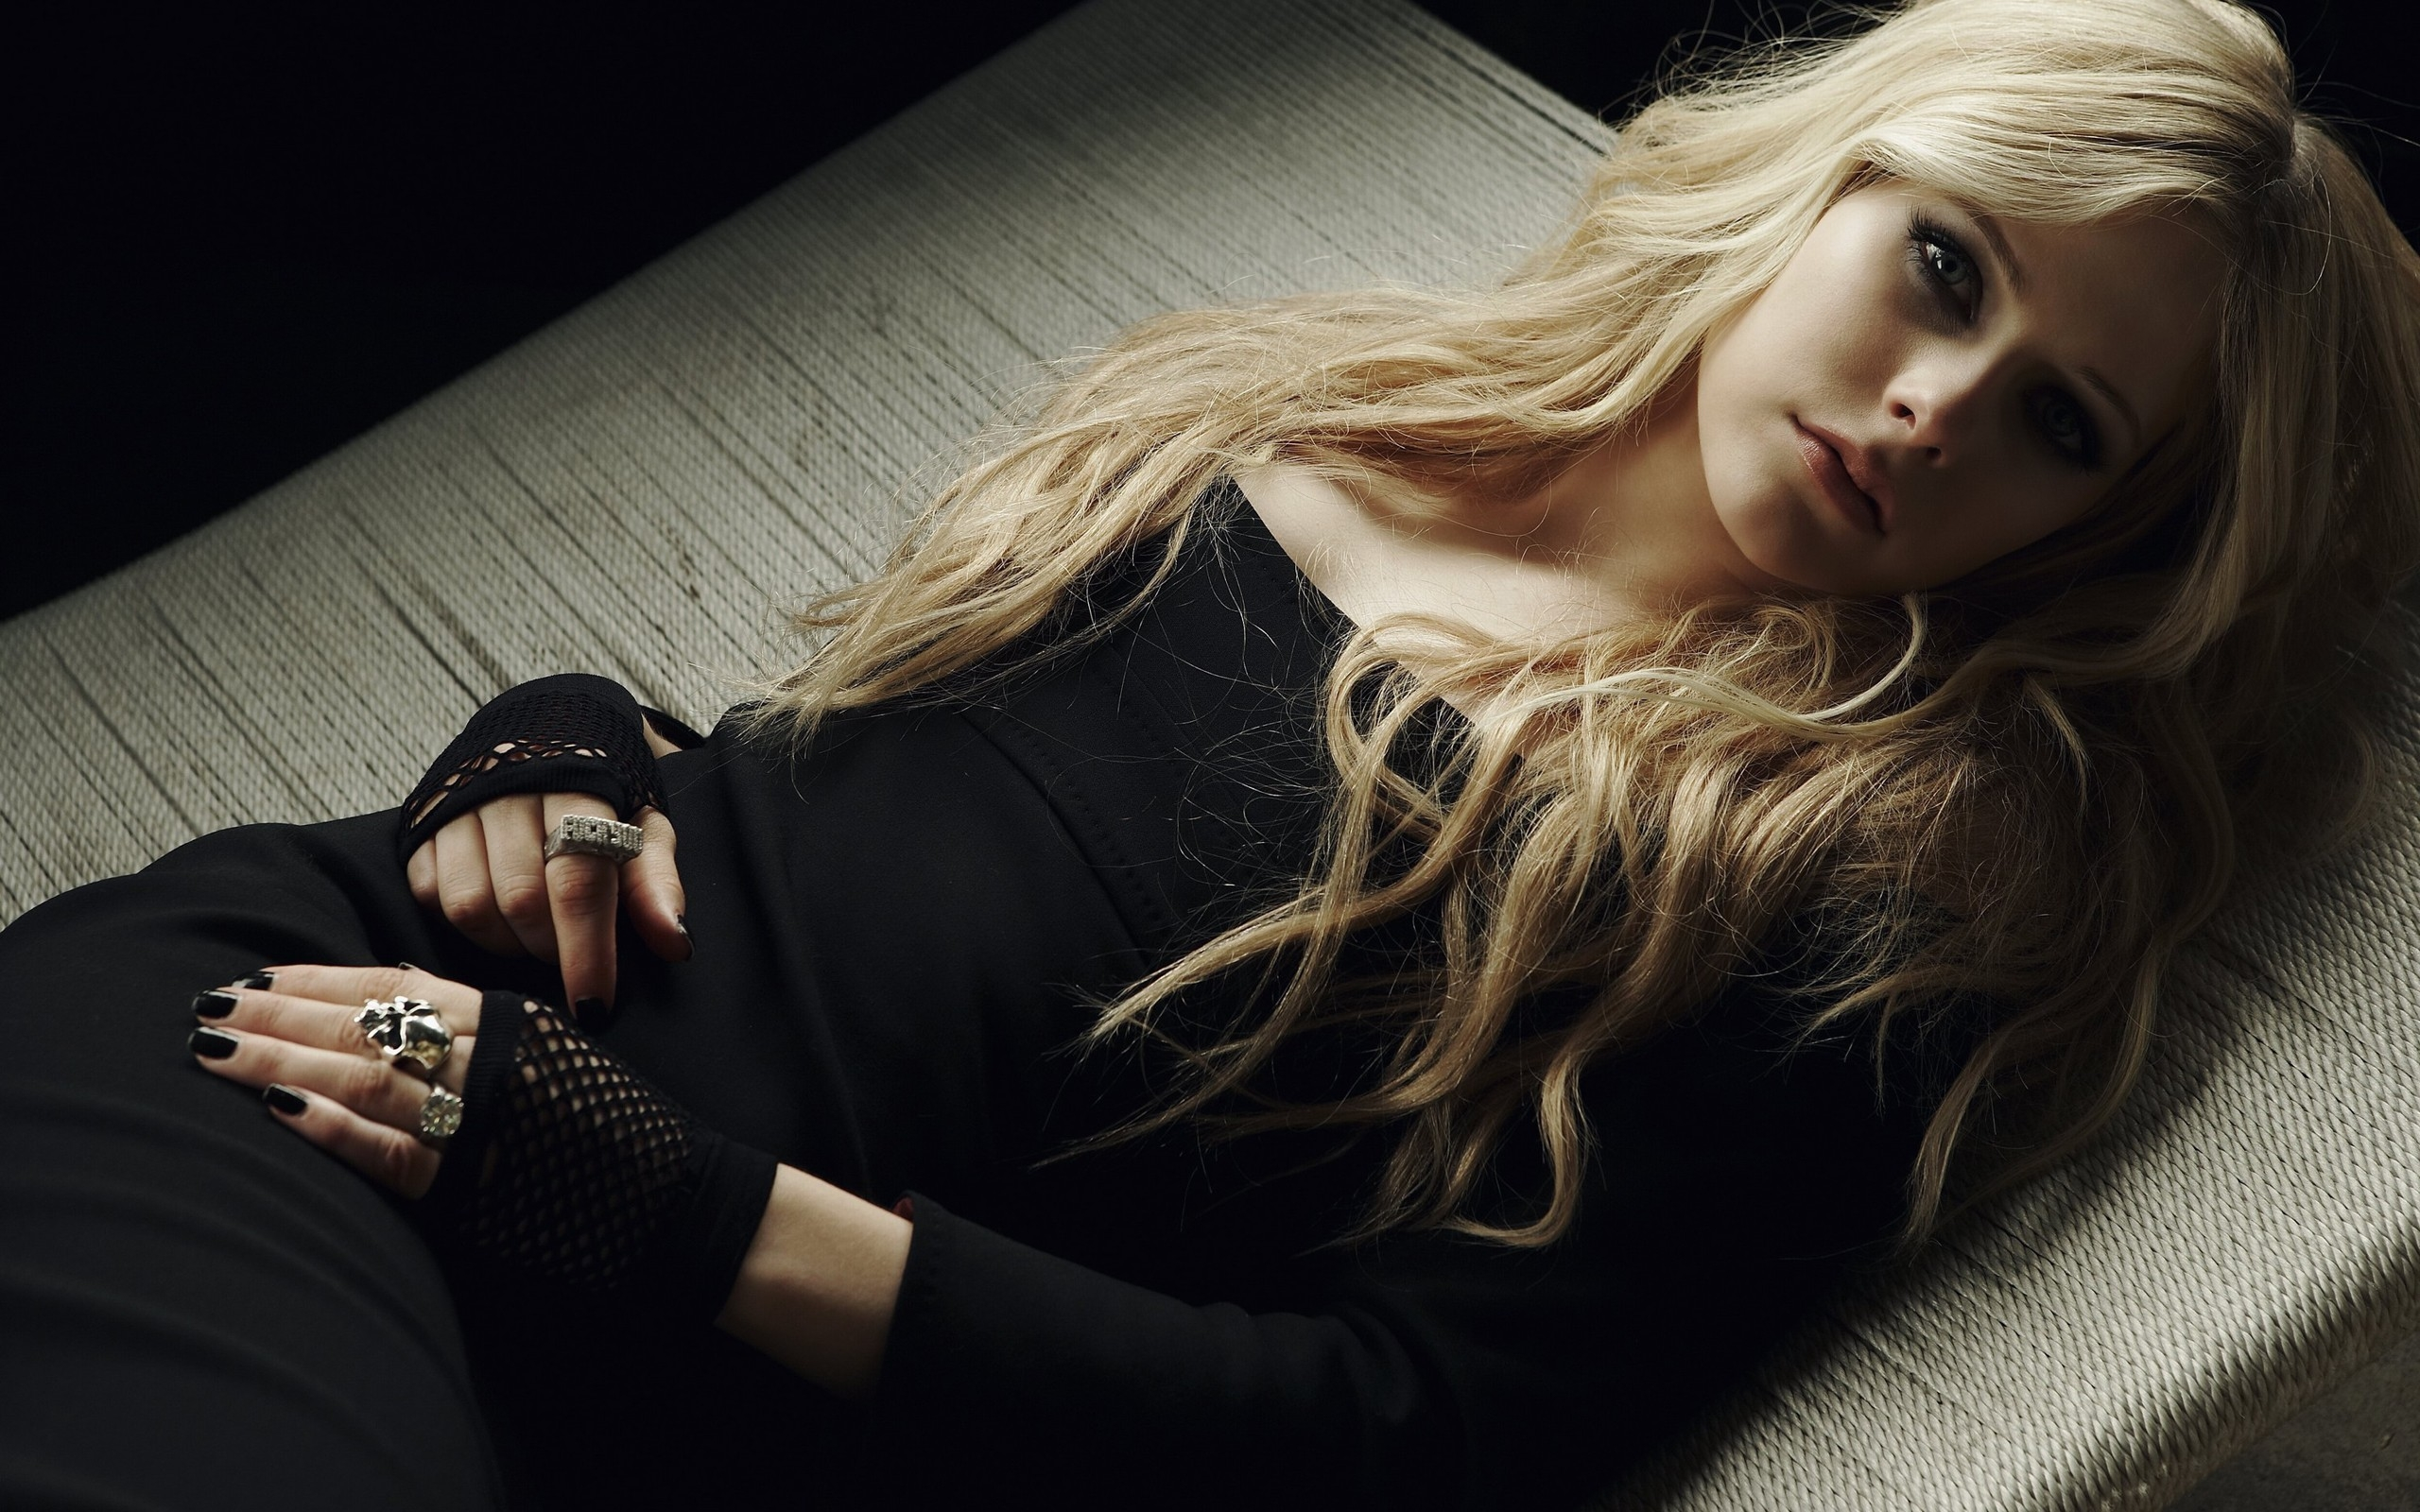 avril_lavigne_dress_manicure_rings_hair_3146_2560x1600